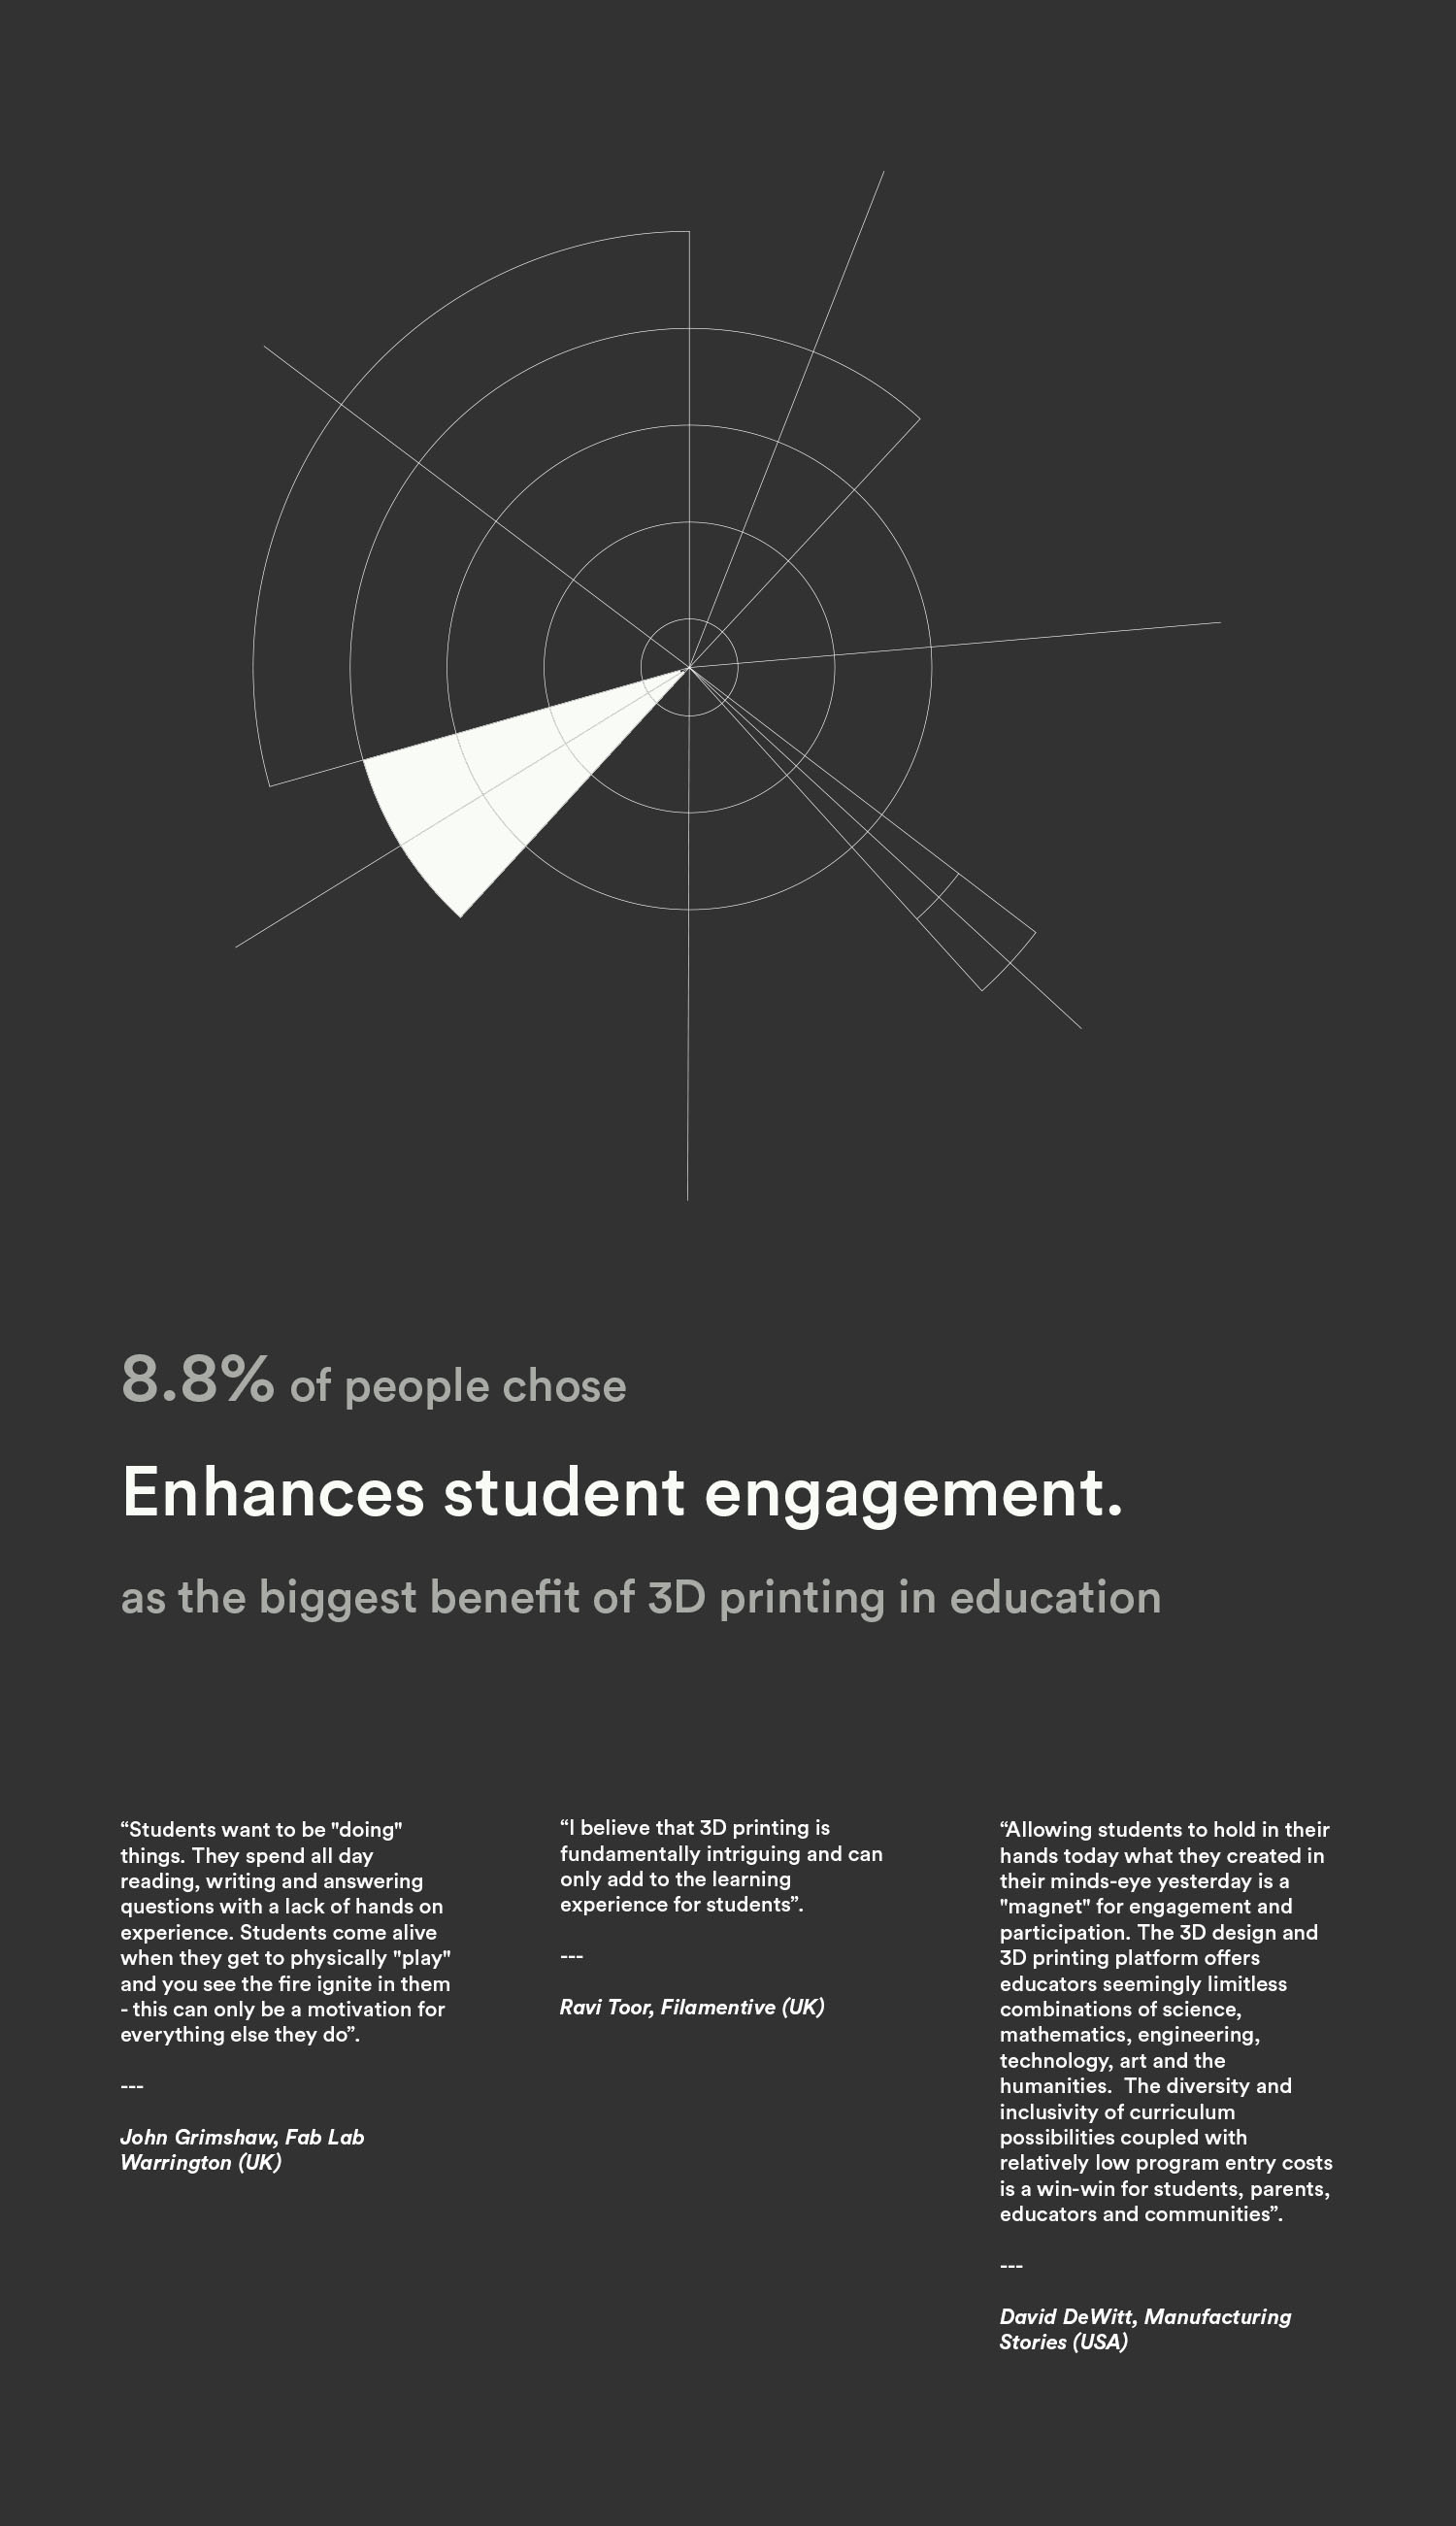 The Benefits of 3D Printing in Education: Opinions of 34 Experts